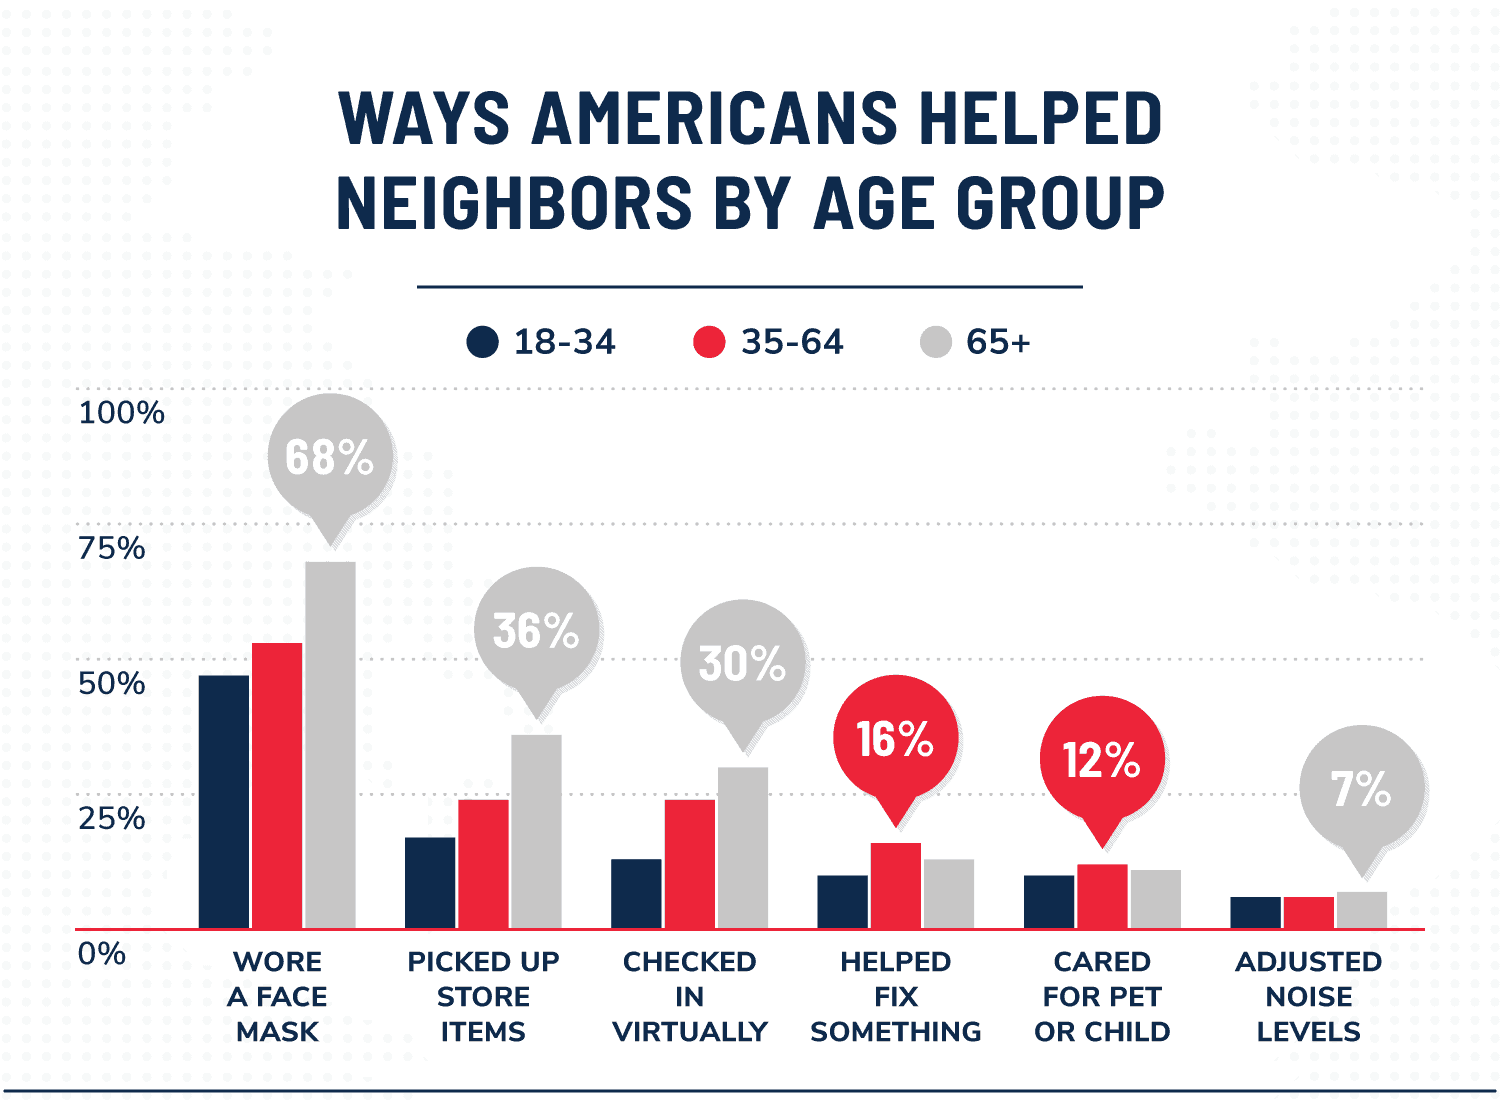 data visualization of ways Americans helped neighbors by age group